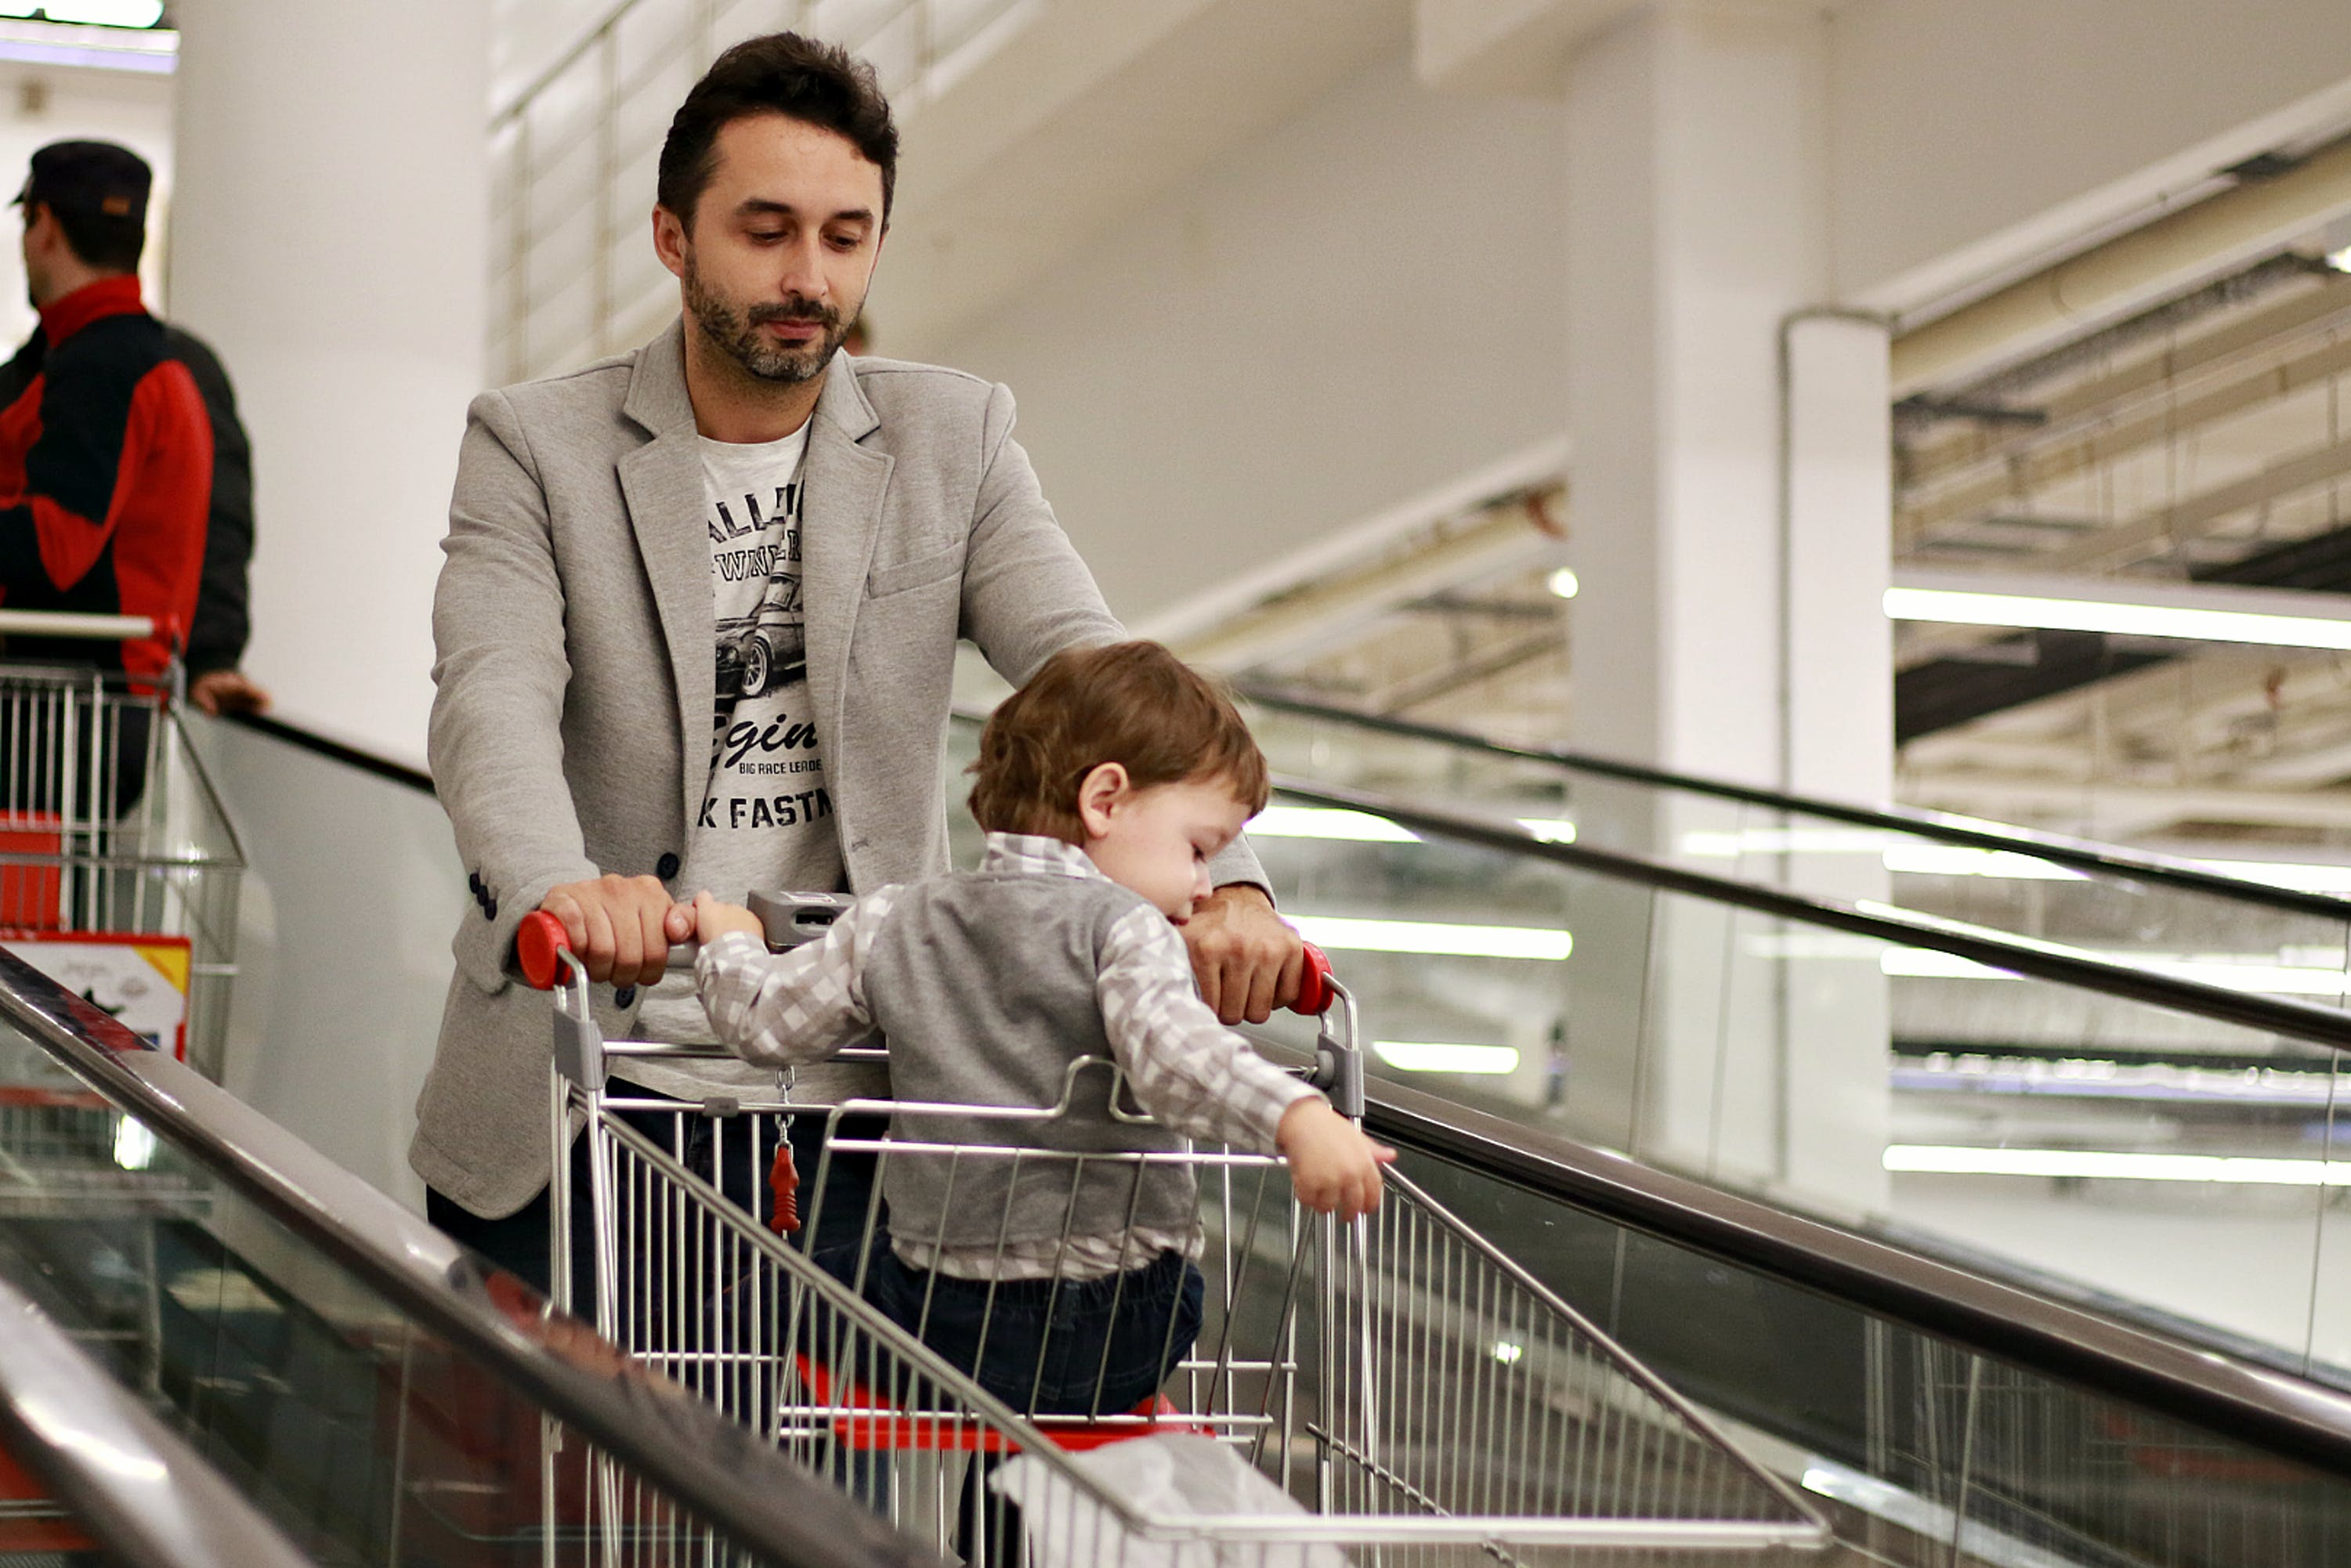 Man Pushing Shoppers Cart With Baby Sitting Inside